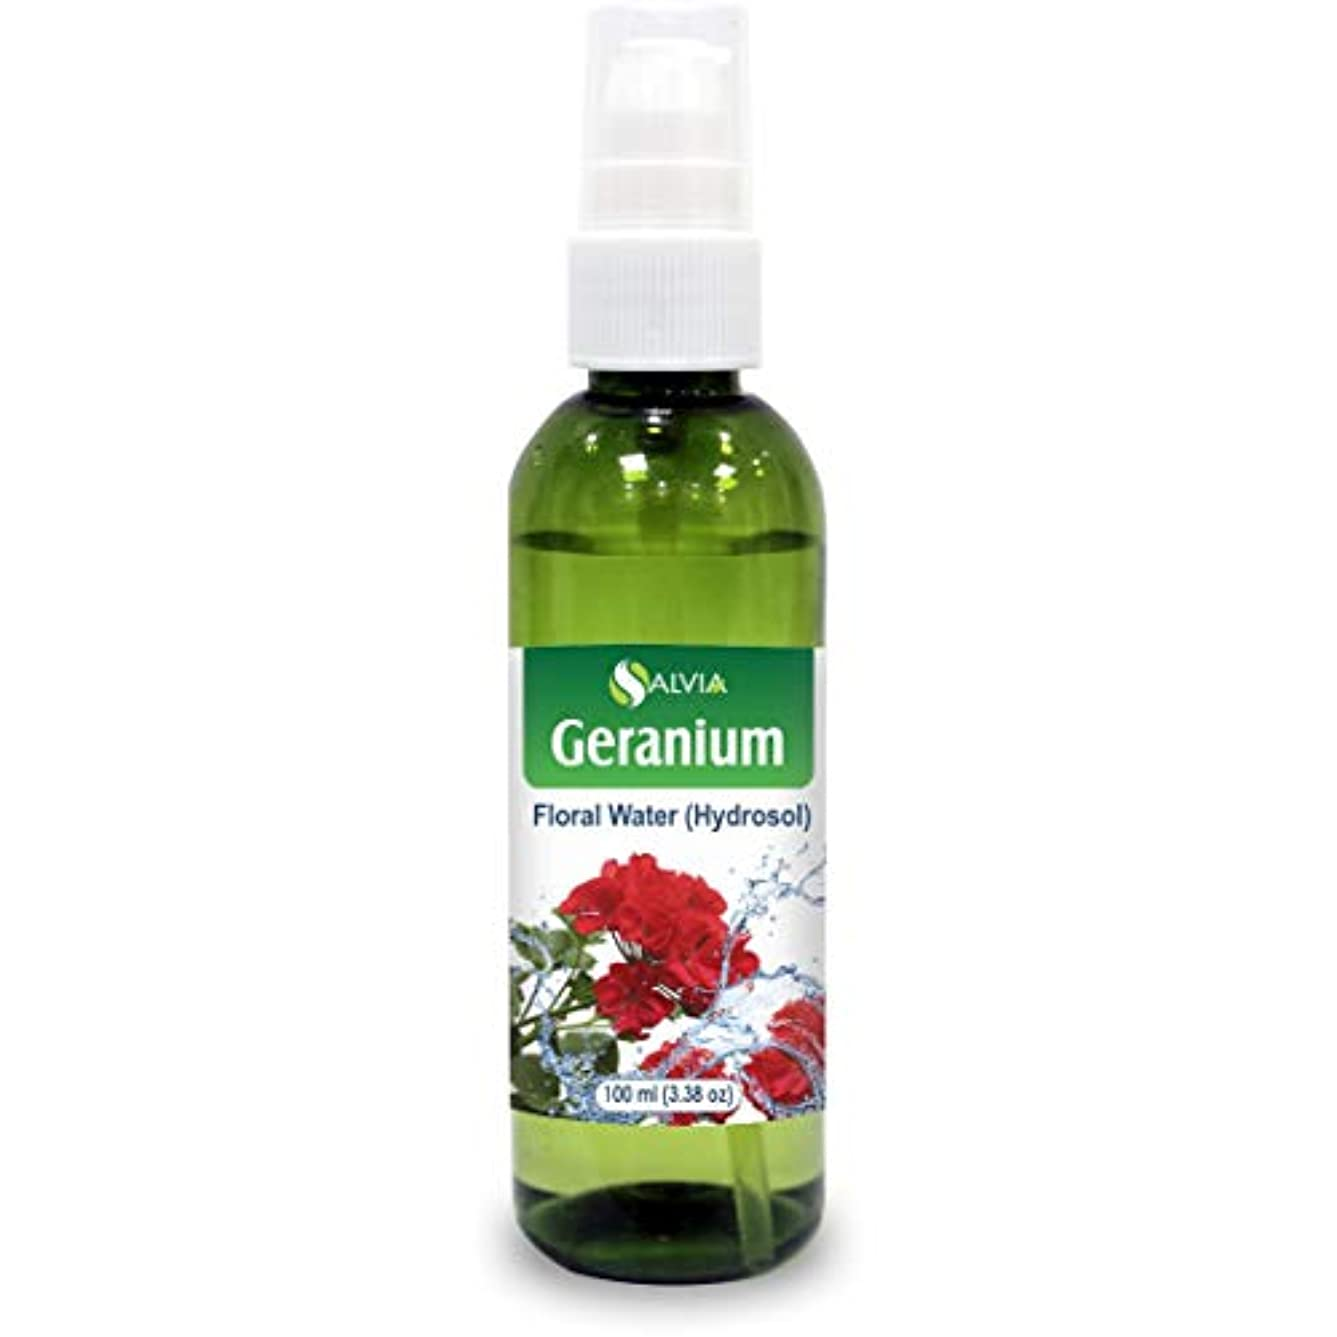 木習慣Geranium Floral Water 100ml (Hydrosol) 100% Pure And Natural